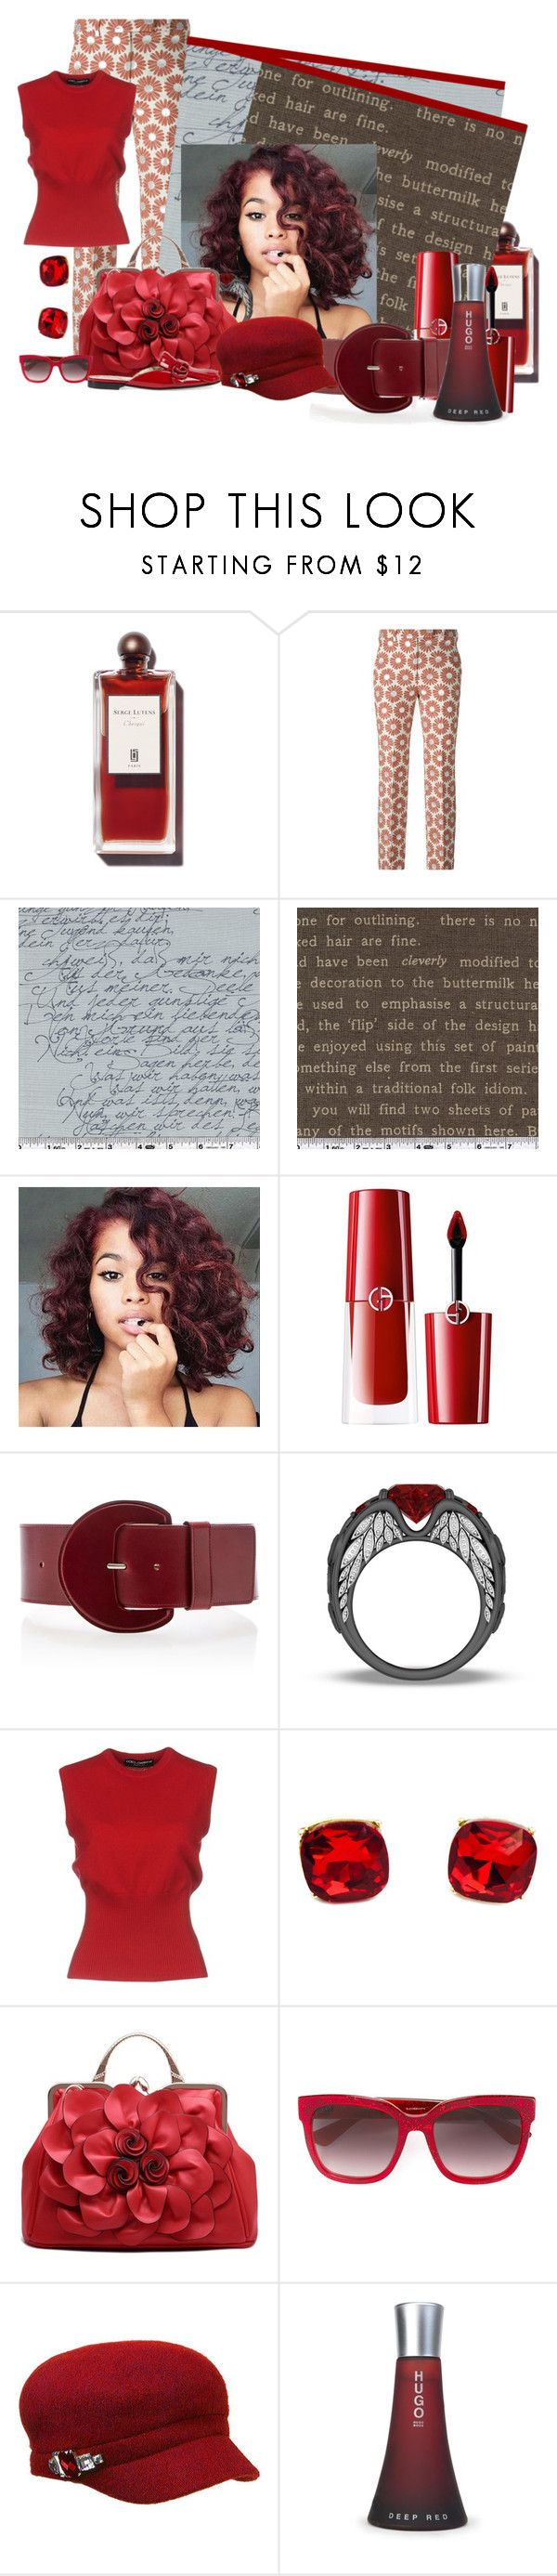 """""""Sincerity in Red"""" by jakenpink ❤ liked on Polyvore featuring Maison Margiela, Giorgio Armani, Michael Kors, Dolce&Gabbana, Gucci, Betmar and HUGO"""